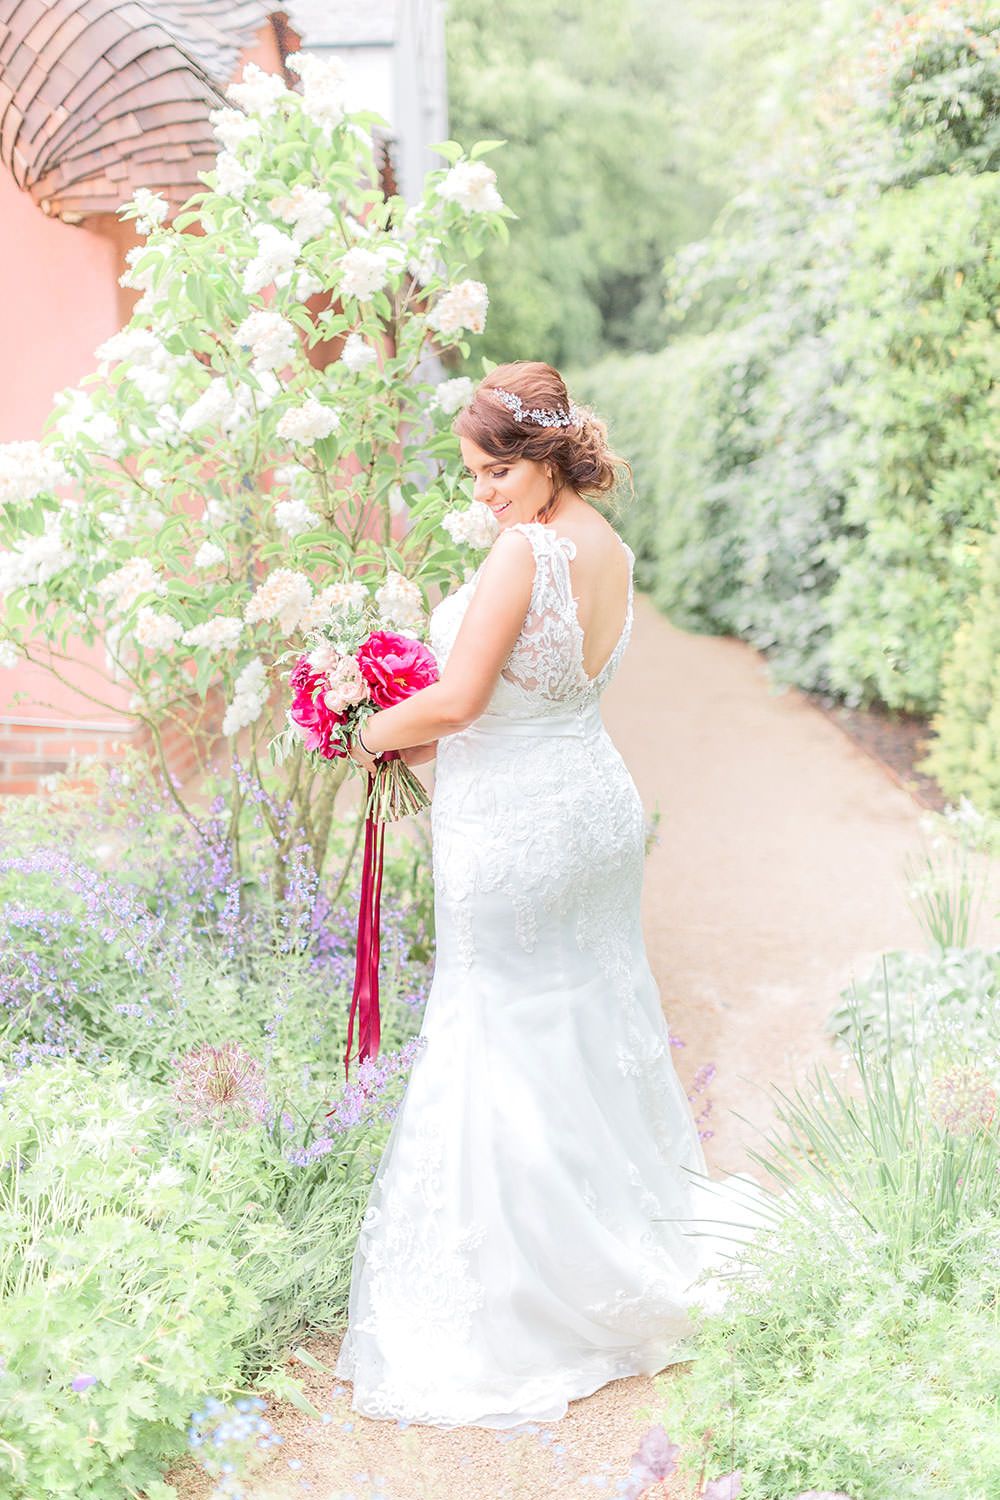 Lace Dress Gown Bride Bridal Sweetheart Train Belt Fit Flare Marsala Gold Wedding Carn Patrick Photography